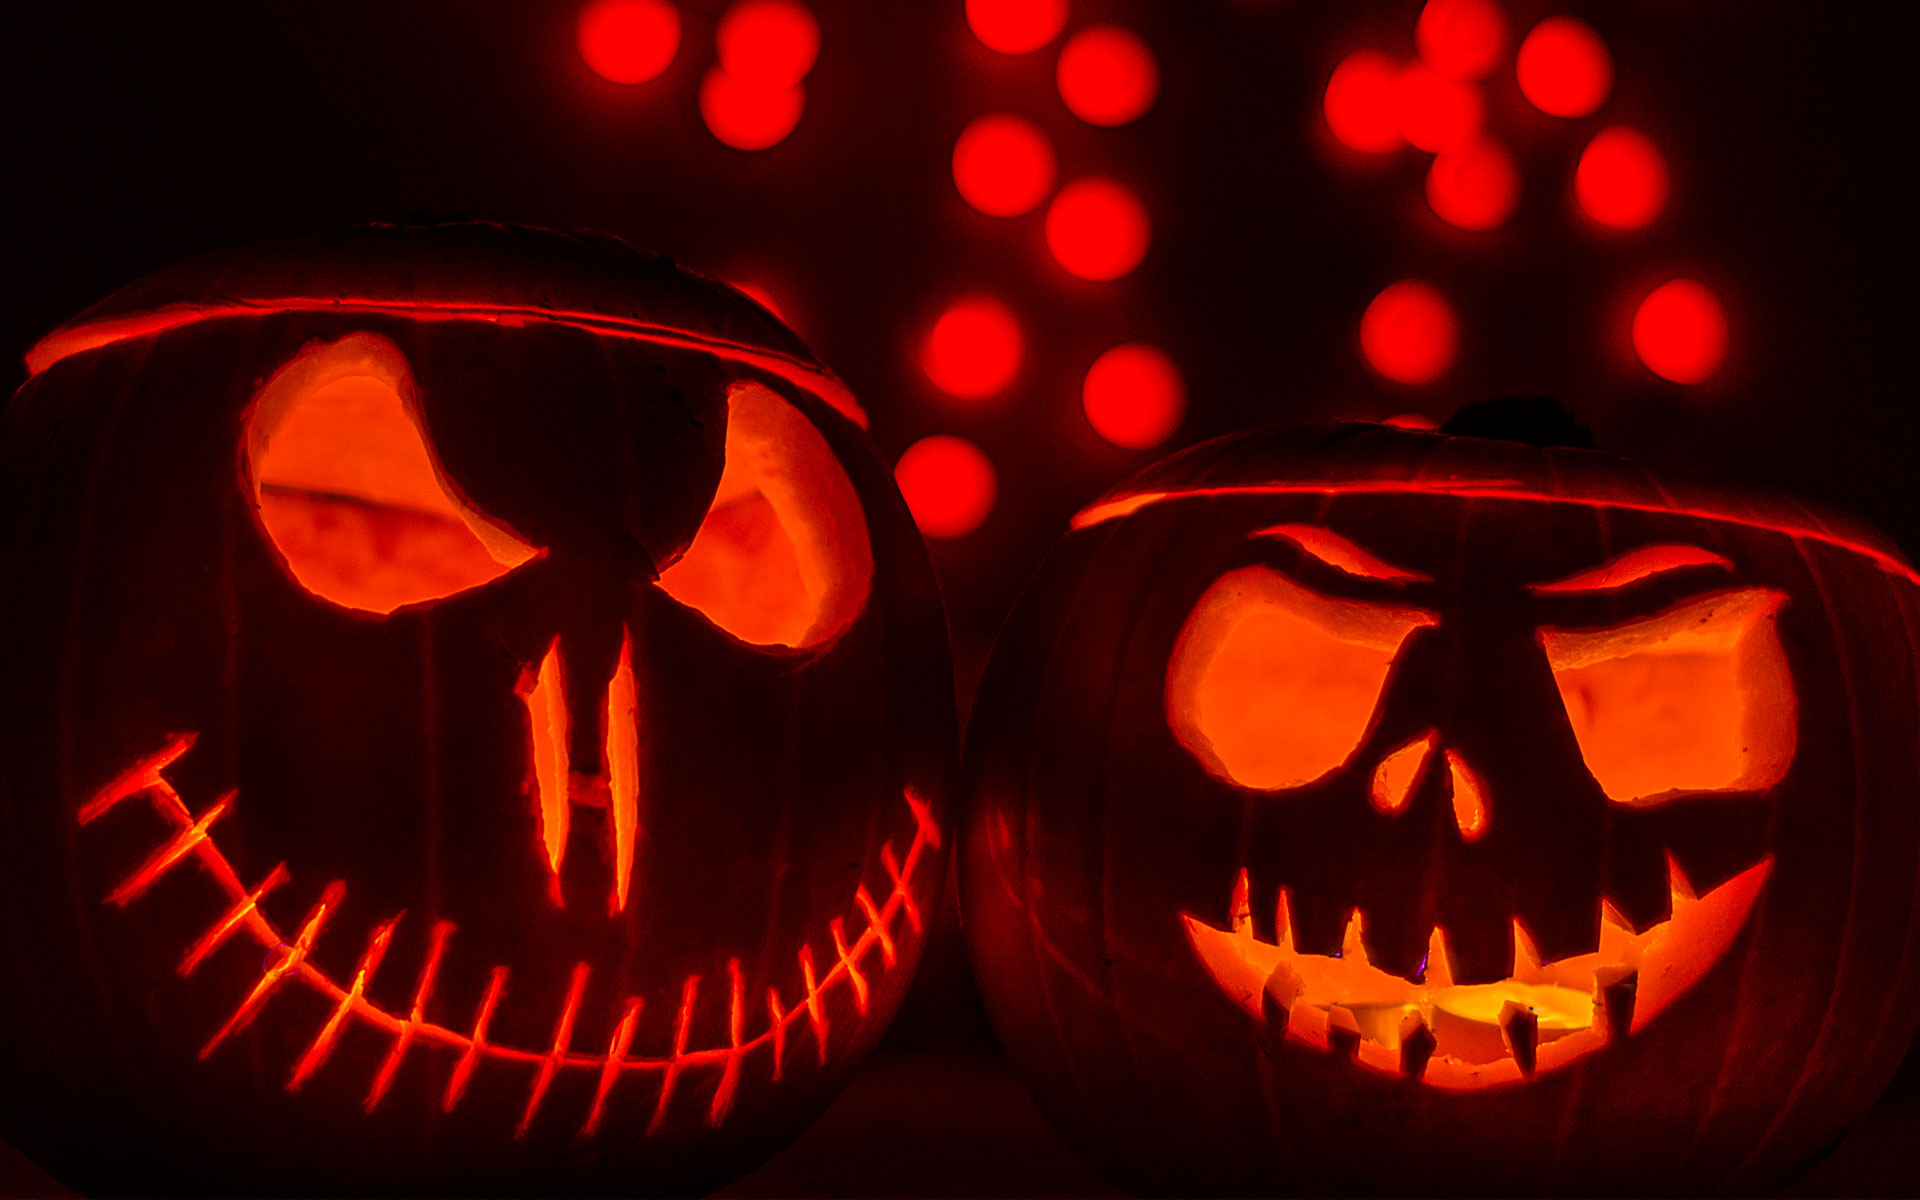 50 Scary Halloween 2018 Hd Wallpapers Backgrounds Pumpkins